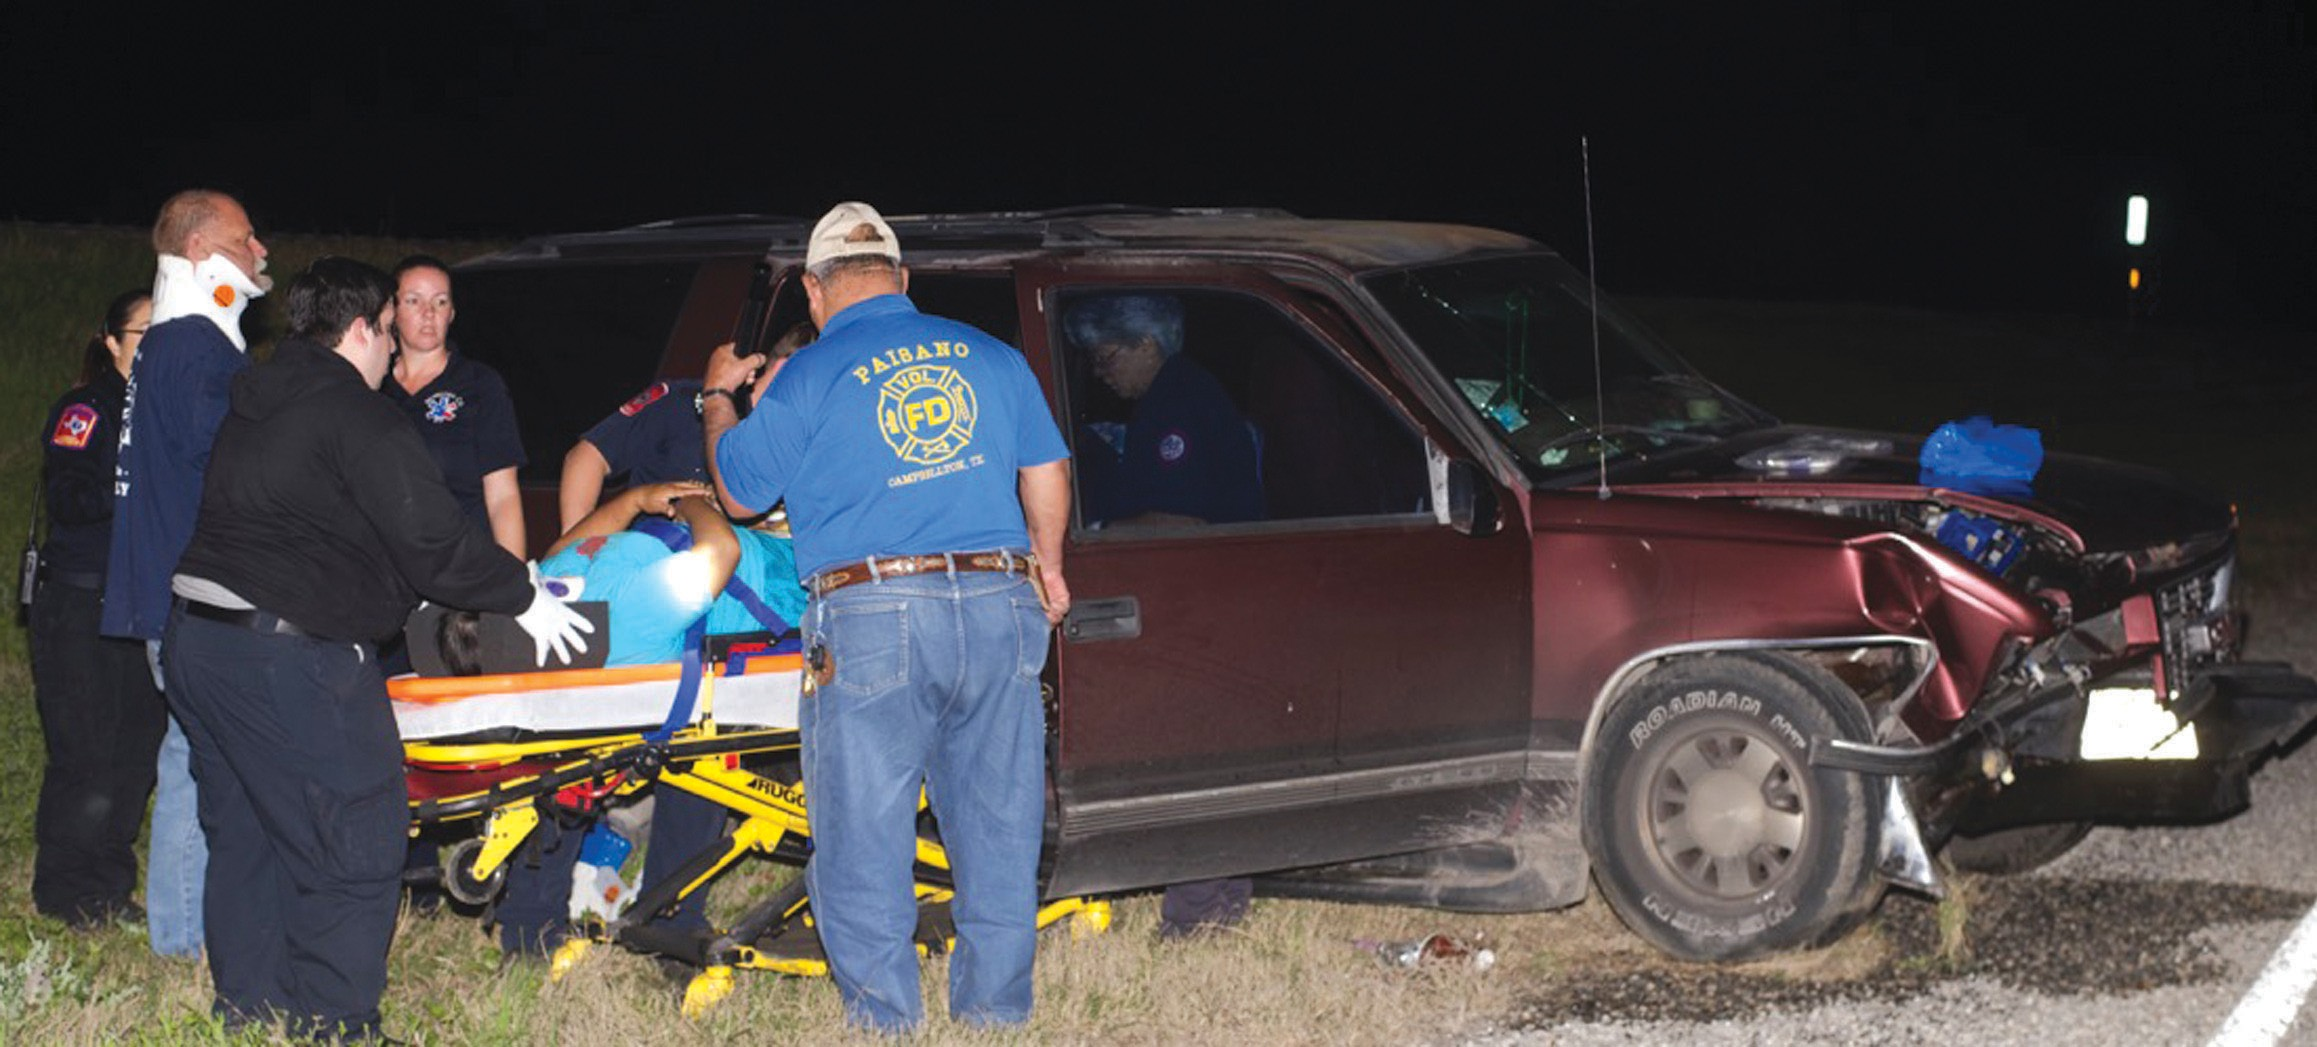 Atascosa County law enforcement agencies responded to a three vehicle accident late Saturday night, March 14, involving a motorcycle fatality. The accident occurred on IH-37, around mile marker 96.